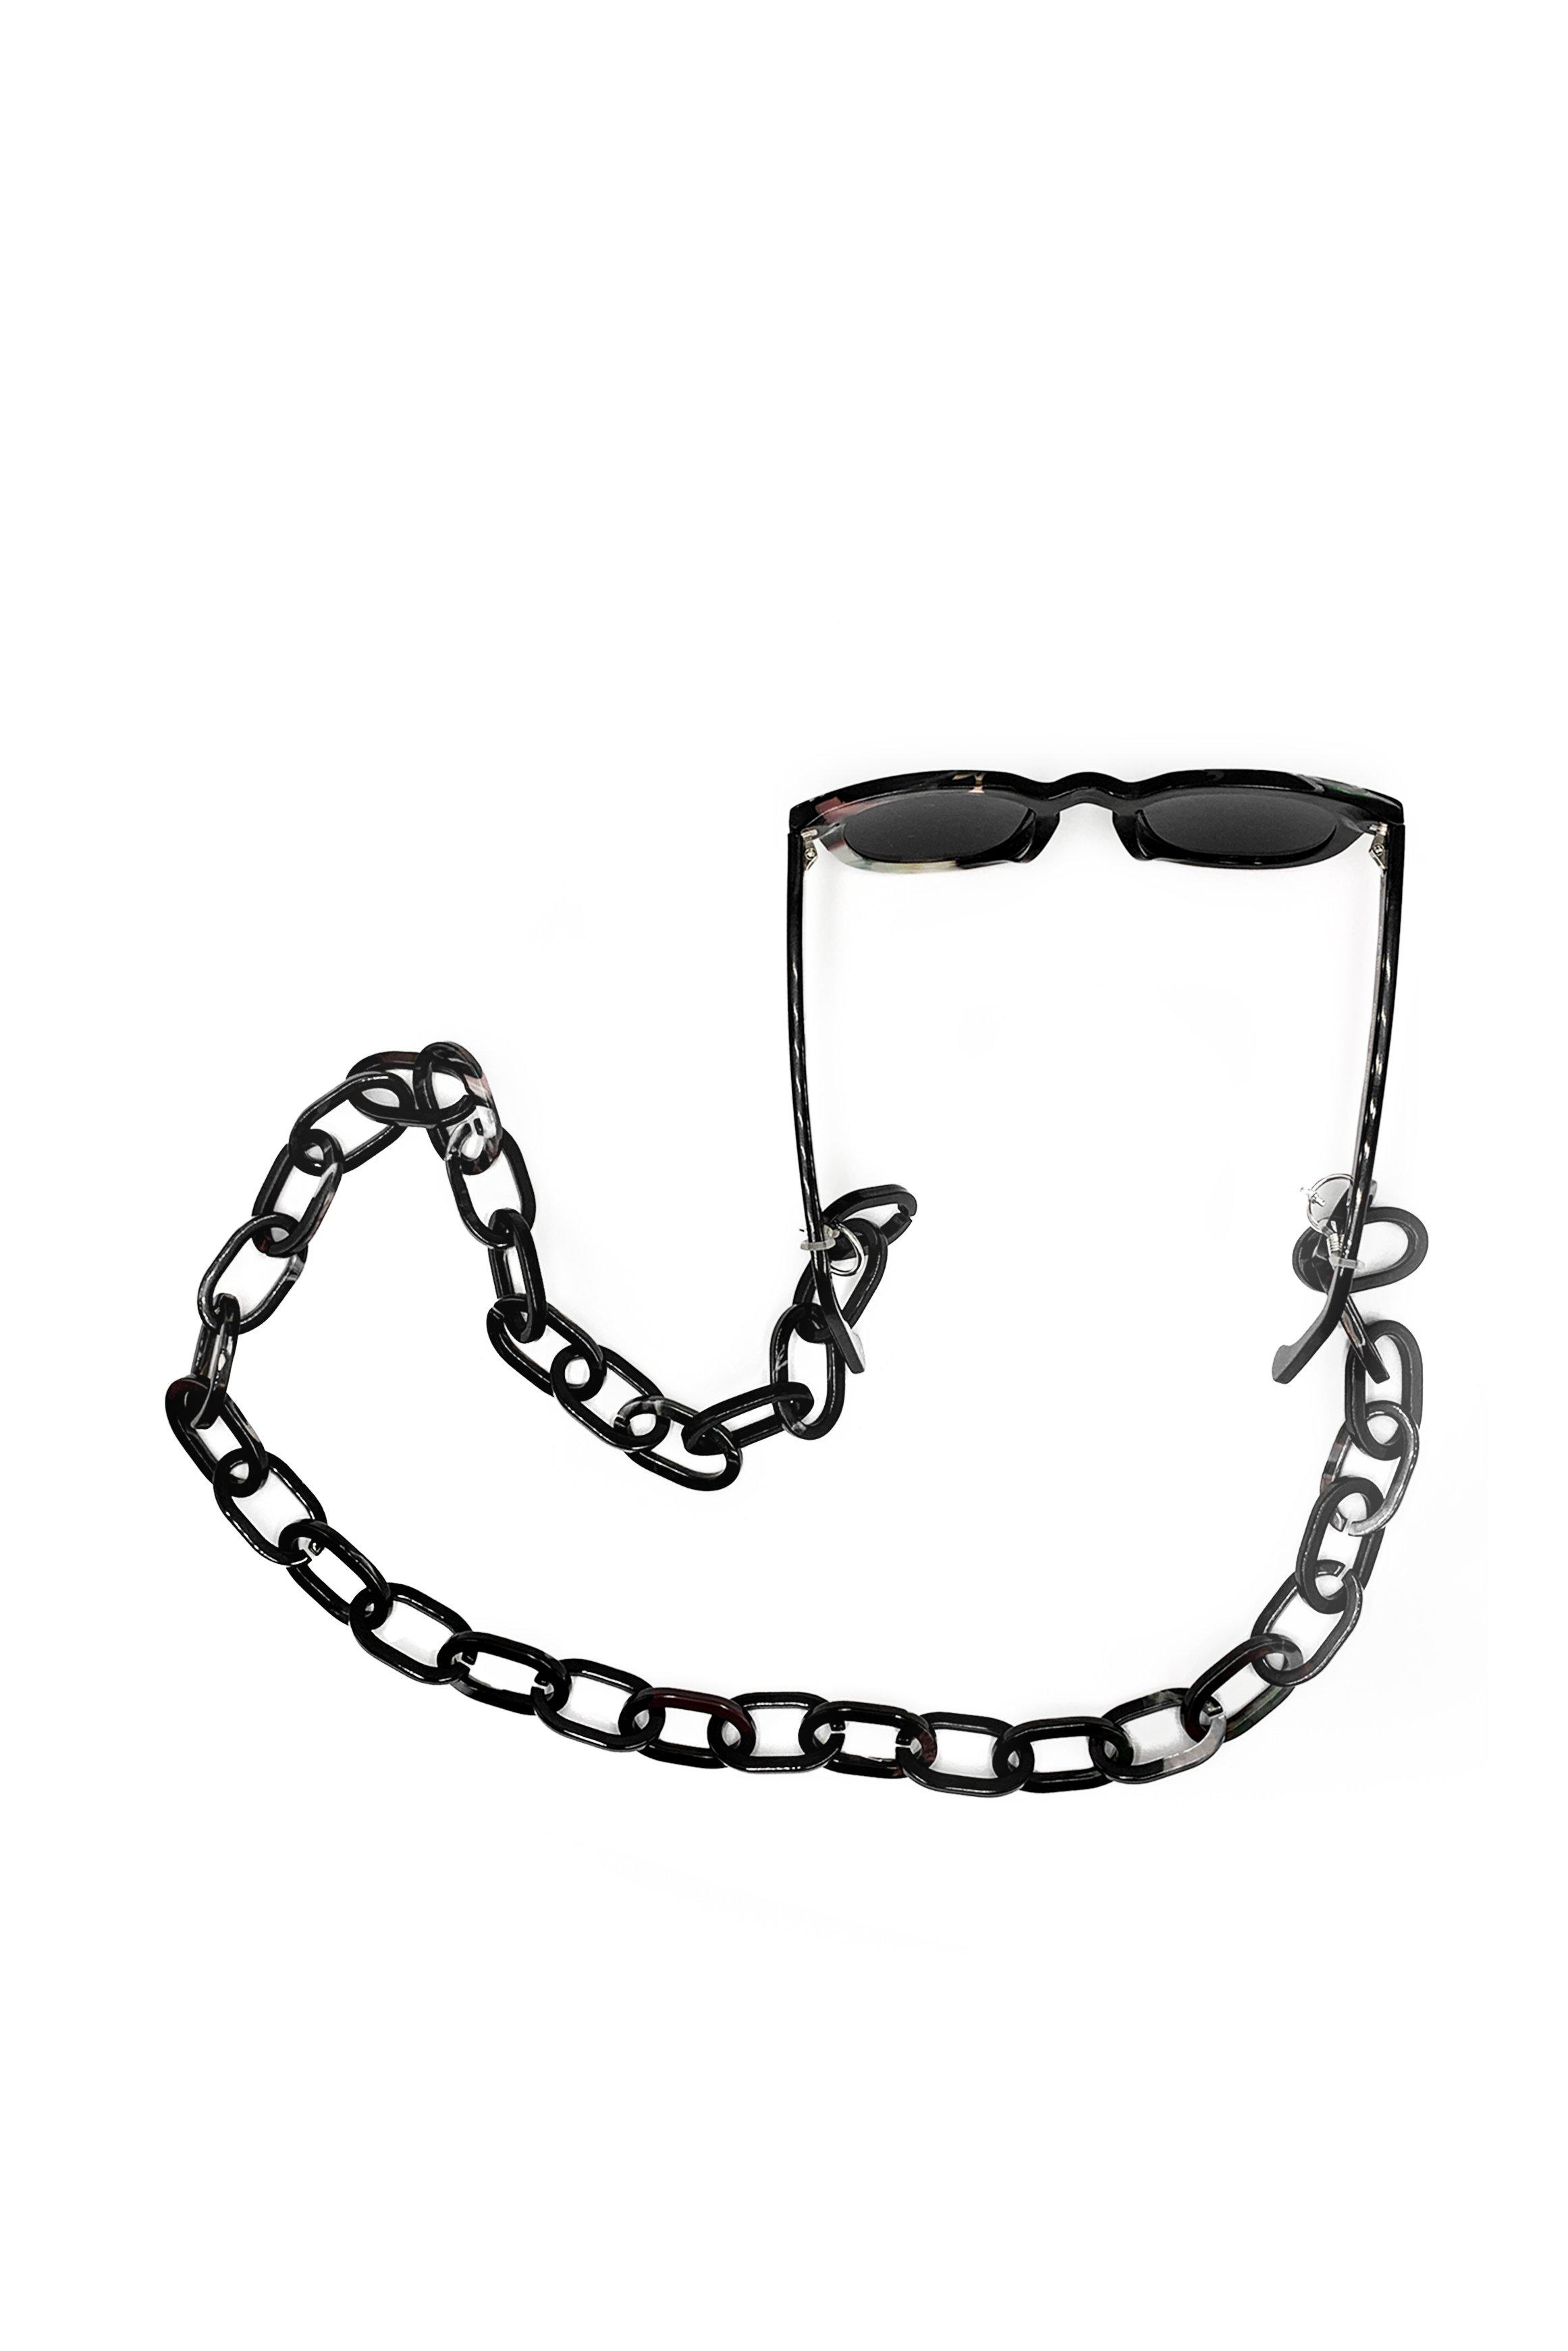 Recycled Acetate Sunglass Chain in Emerald